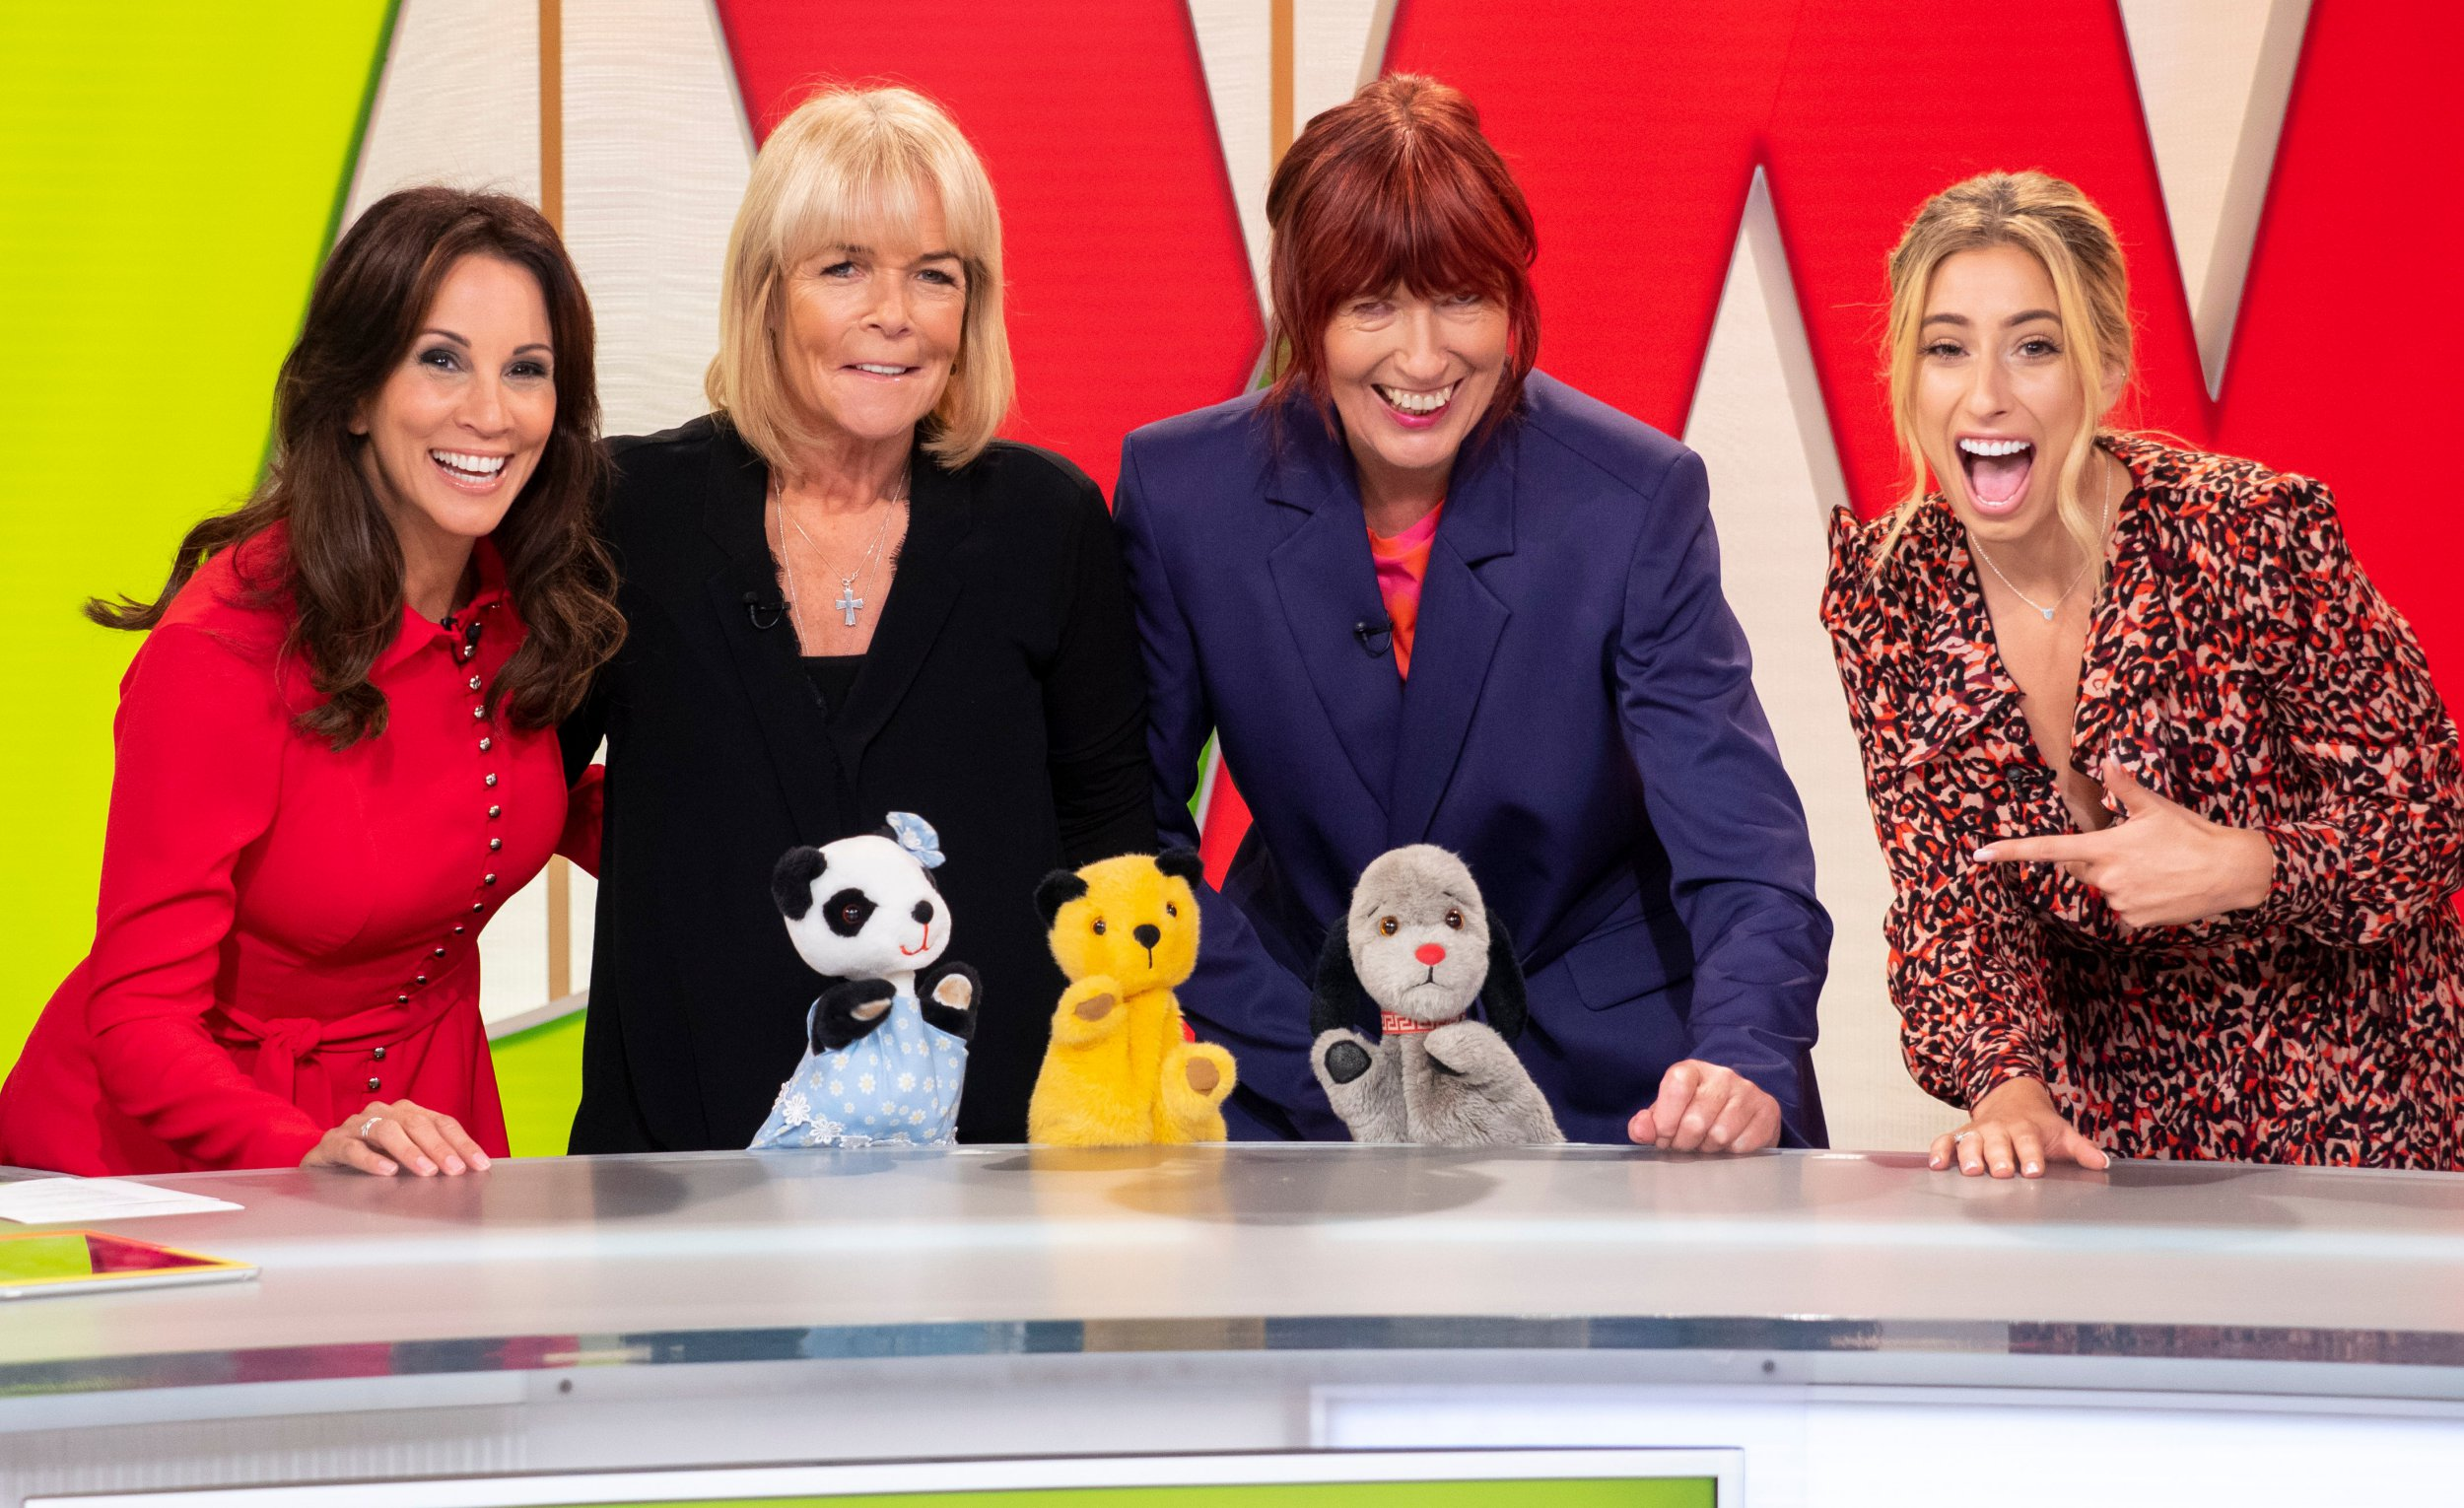 EDITORIAL USE ONLY. NO MERCHANDISING Mandatory Credit: Photo by Ken McKay/ITV/REX (9880171n) Andrea McLean, Linda Robson, Janet Street Porter, Stacey Solomon, Soo, Sooty and Sweep 'Loose Women' TV show, London, UK - 12 Sep 2018 Celeb Guest: Izzy, wizzy, let?s get busy! It's Sooty and Sweep TV legend Sooty joins us alongside sidekick Sweep, girlfriend Soo, and good friend Richard Cadell to celebrate the return of The Sooty Show on ITV. Sooty is also celebrating his 70th birthday this year, so it's about time we treated him to the Loose experience! And you'll never guess which of our panel was a huge Sooty fan and even sent him fan letters!